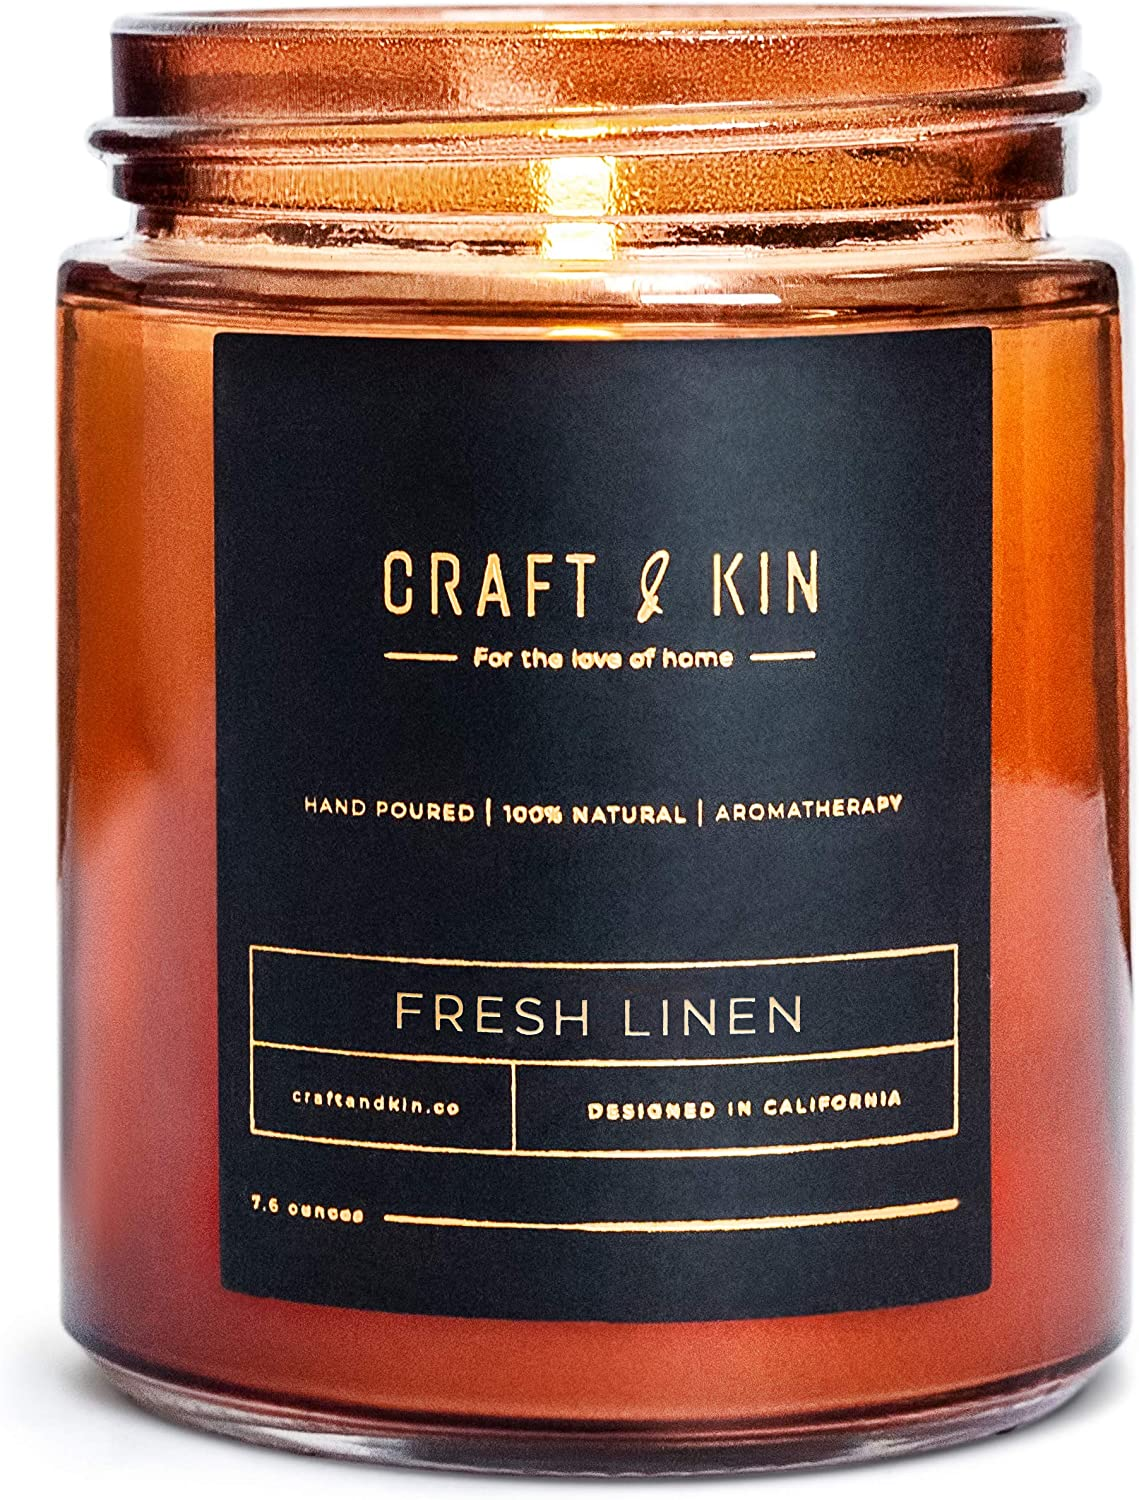 Craft & Kin Fresh Linen Candle, Premium Scented Candles for Men & Women | All-Natural Soy Candles, Rustic Home Decor Scented Candles | Non-Toxic, Ultra Clean Burn Aromatherapy Amber Jar Candles